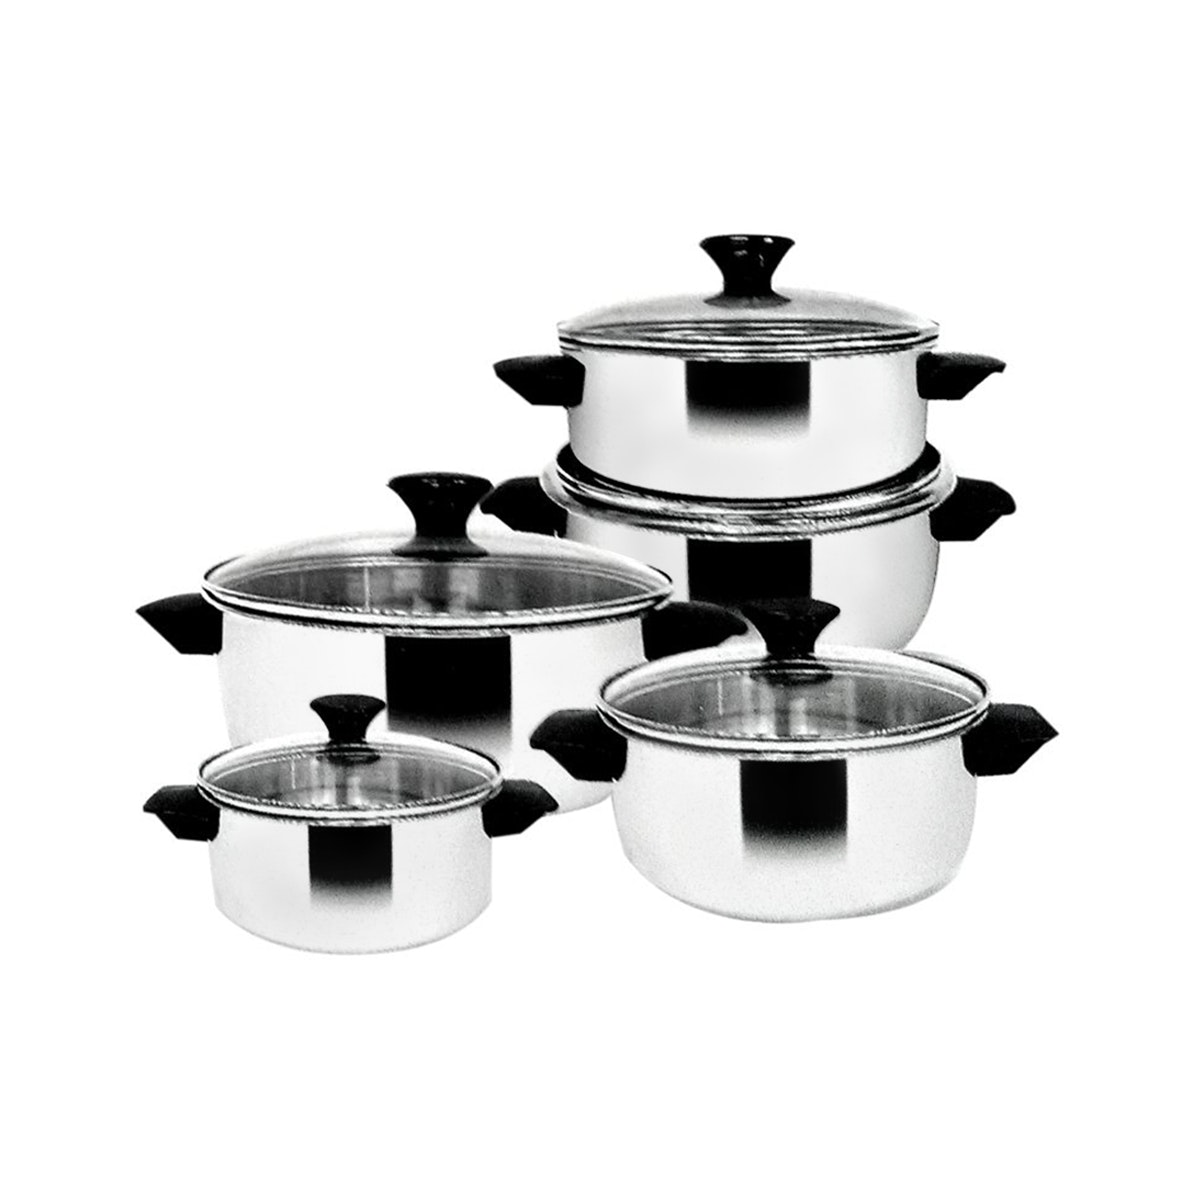 Maspion Dahlia Set SS-P182 (14, 16, 18, 20, 22cm Dutch Oven with Glass Cover)